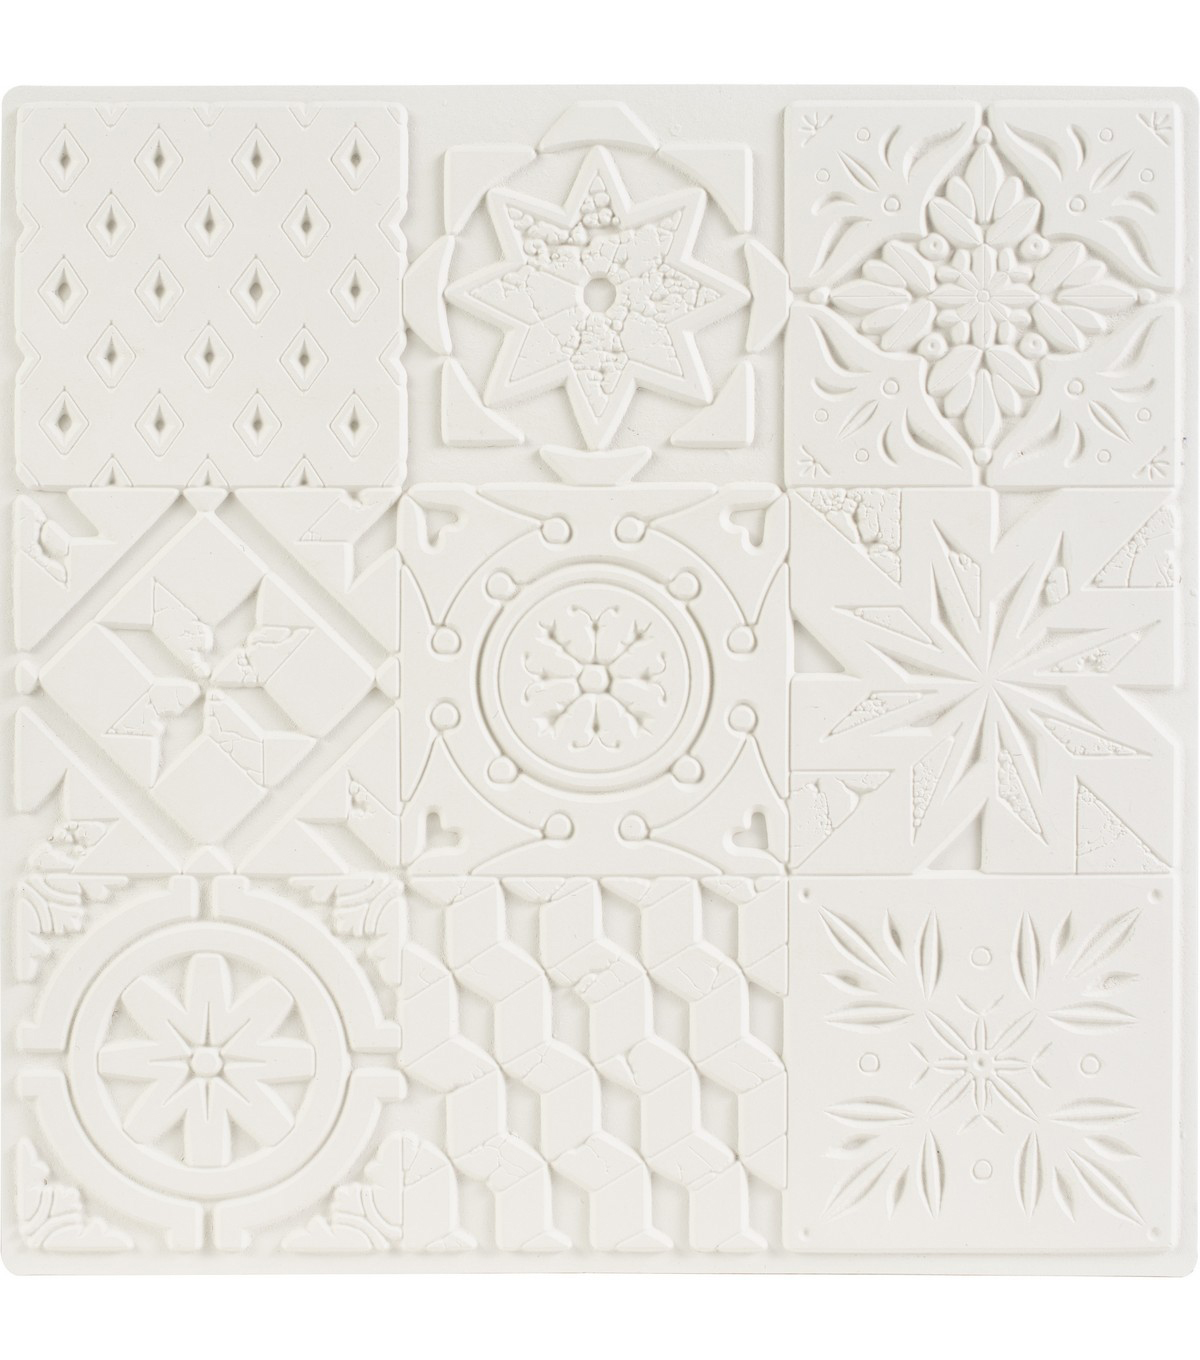 Carabelle Studio Art Printing Square Rubber Texture Plate-Cement Tiles